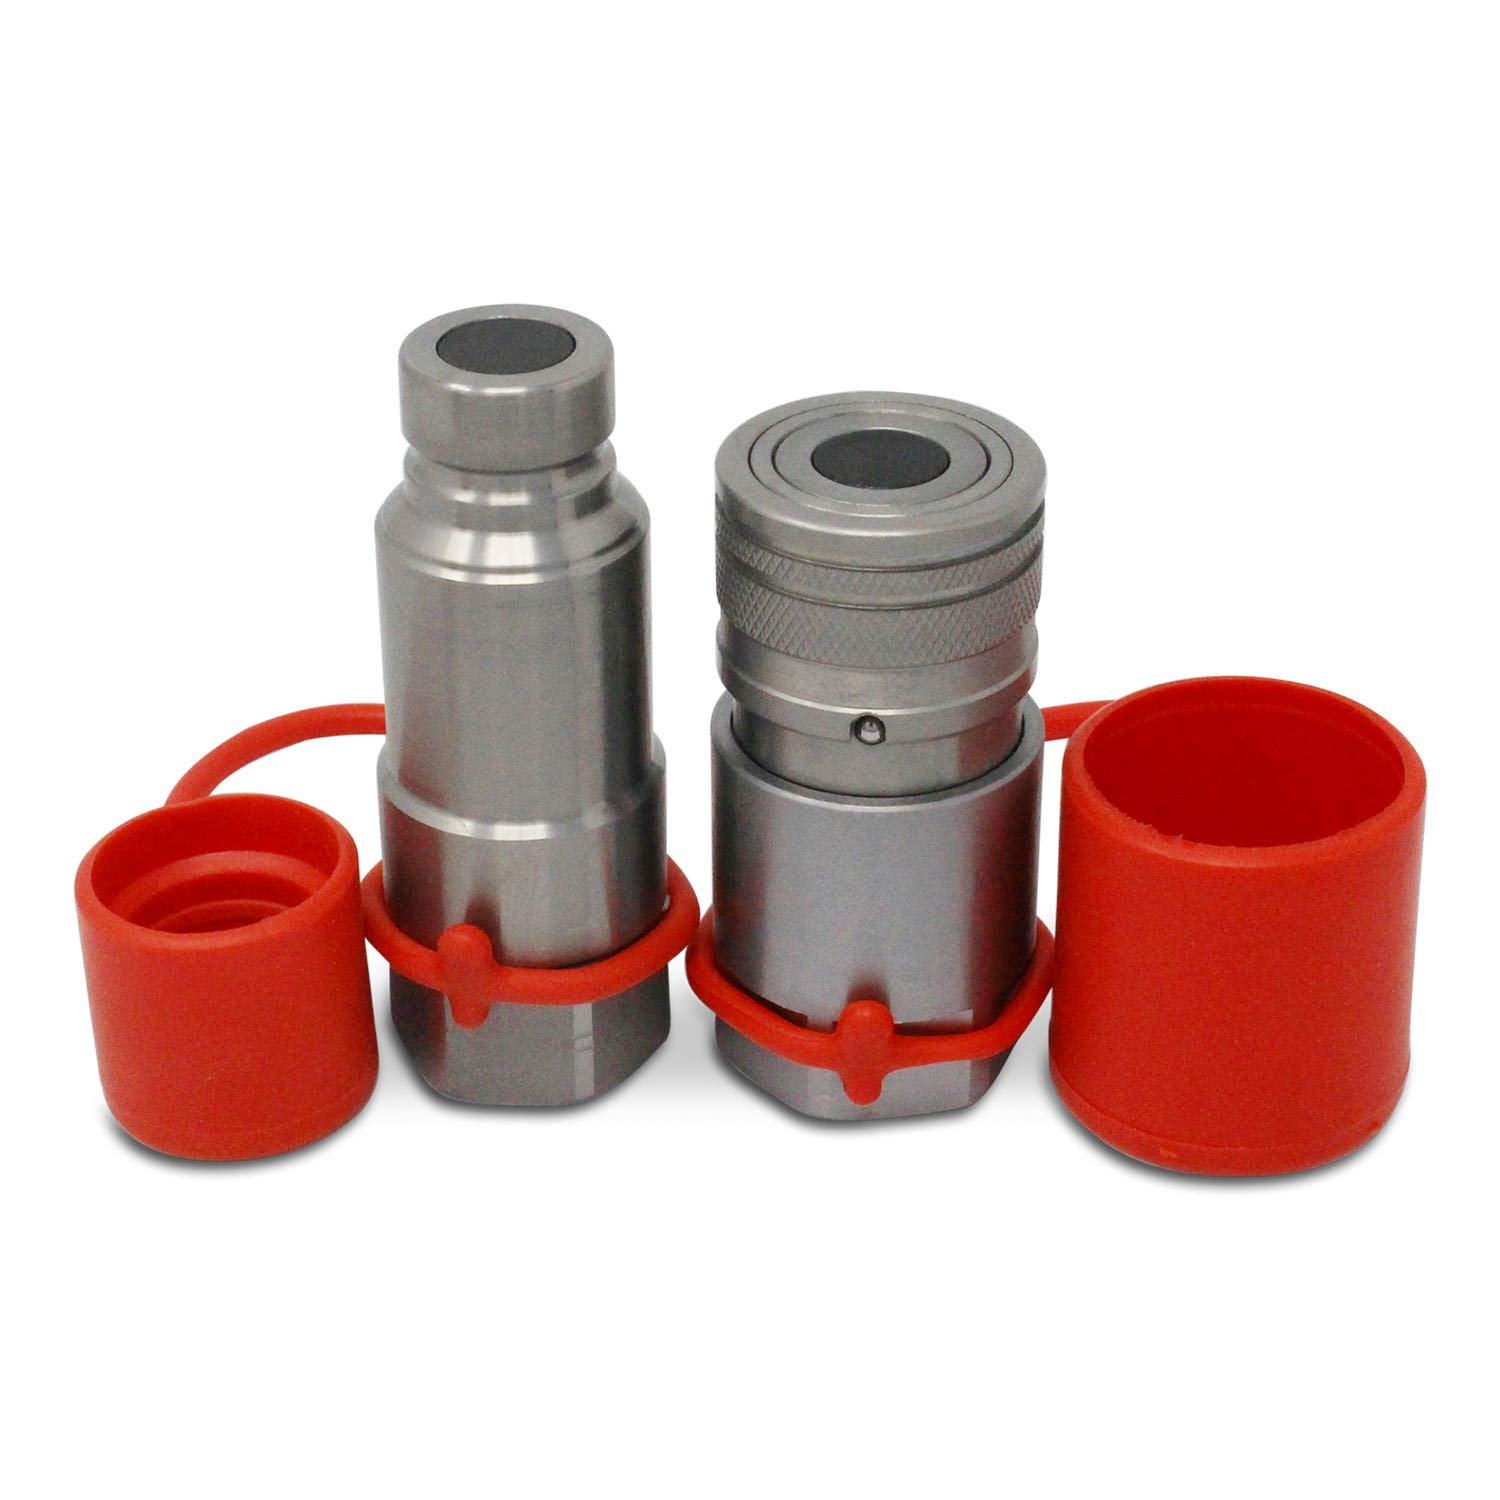 Flat Face Connect Under Pressure Hydraulic Quick Connect Coupler Set, 1/2″ NPT Thread